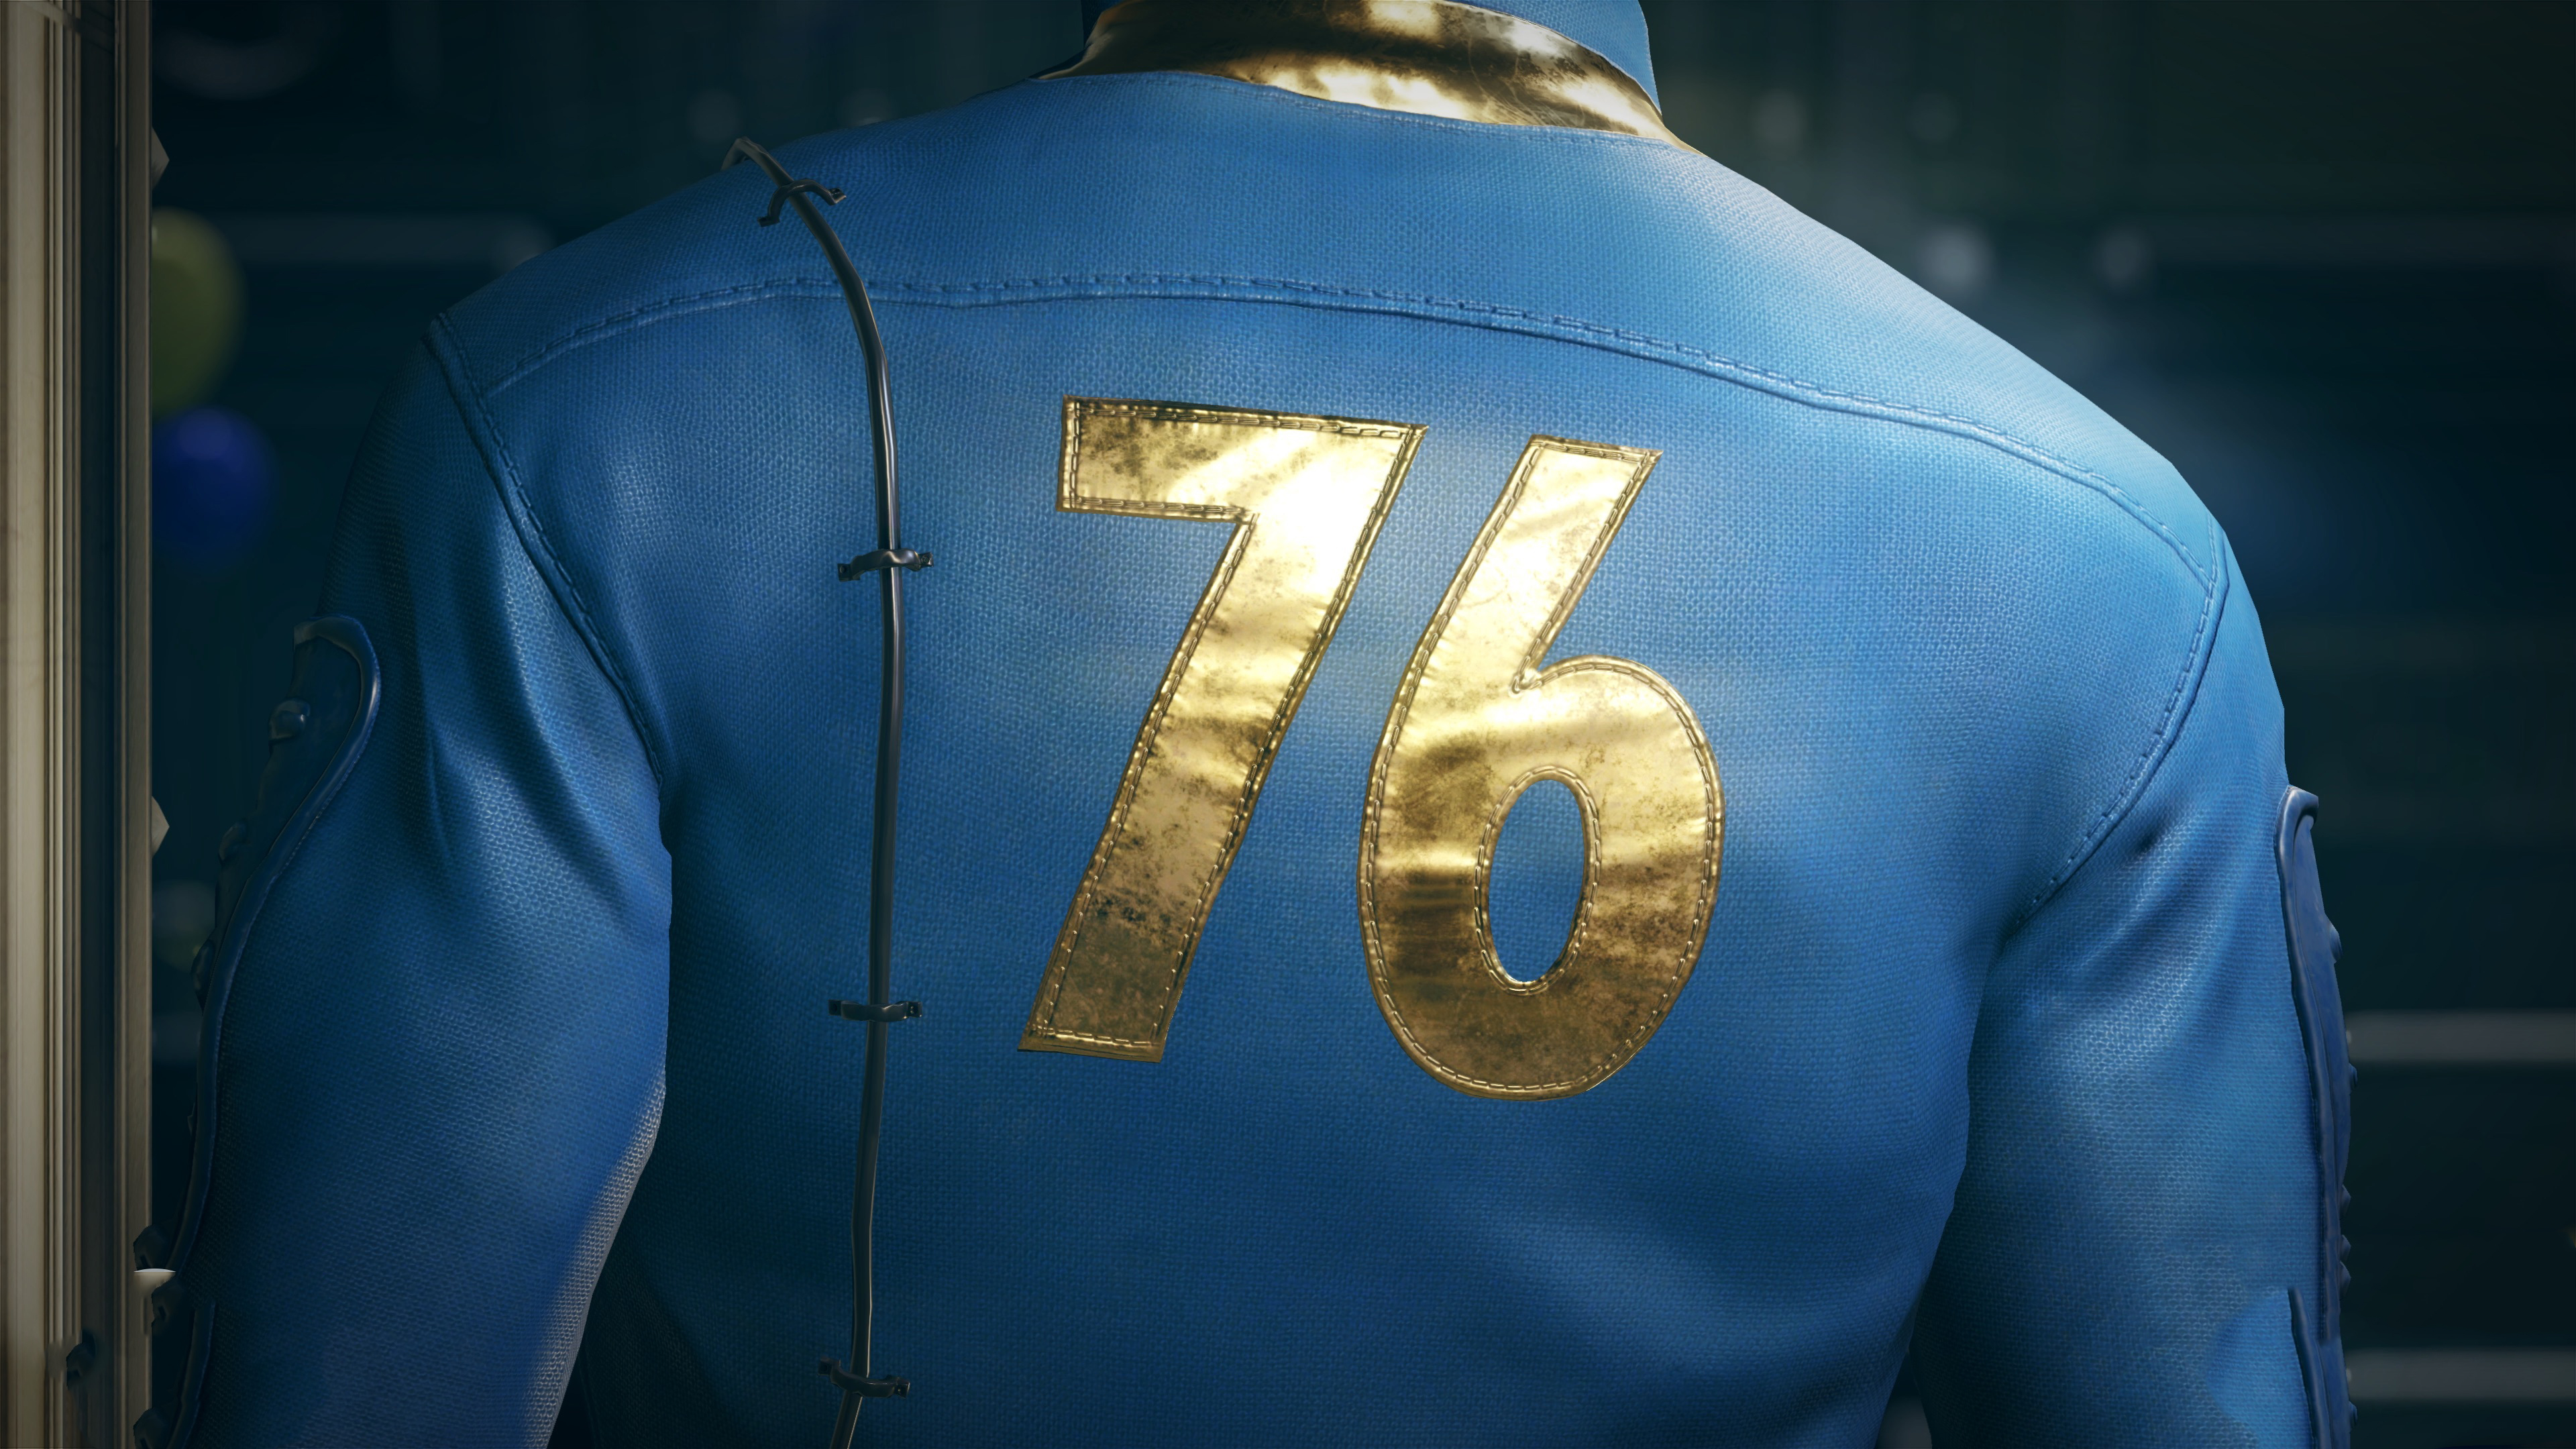 Fallout 76 Hd Games 4k Wallpapers Images Backgrounds